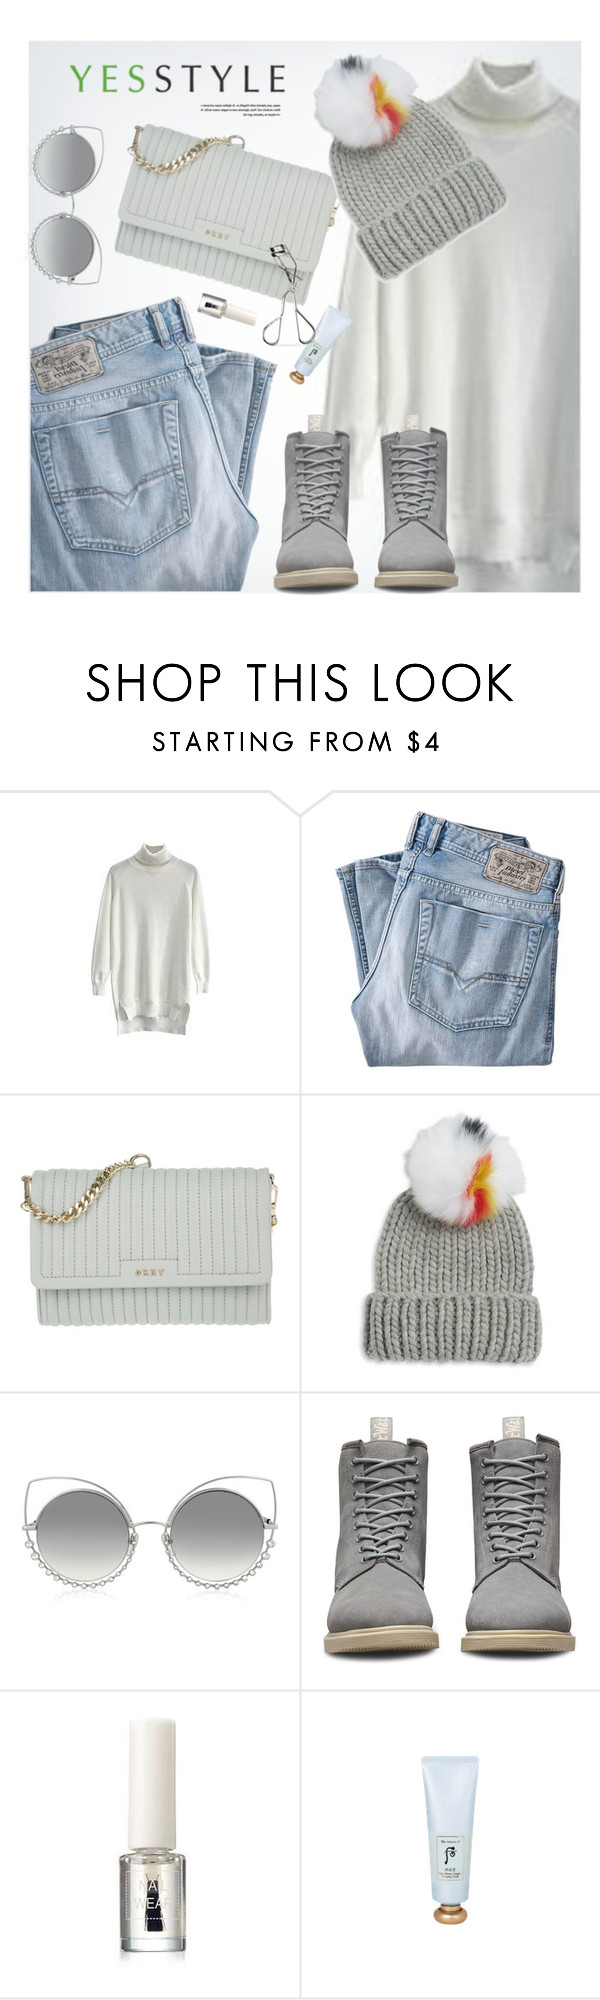 """""""YESSTYLE.com"""" by monmondefou ❤ liked on Polyvore featuring Diesel, DKNY, Eugenia Kim, Marc Jacobs, Dr. Martens, The History of Whoo, Innisfree, Beauty, New and year"""